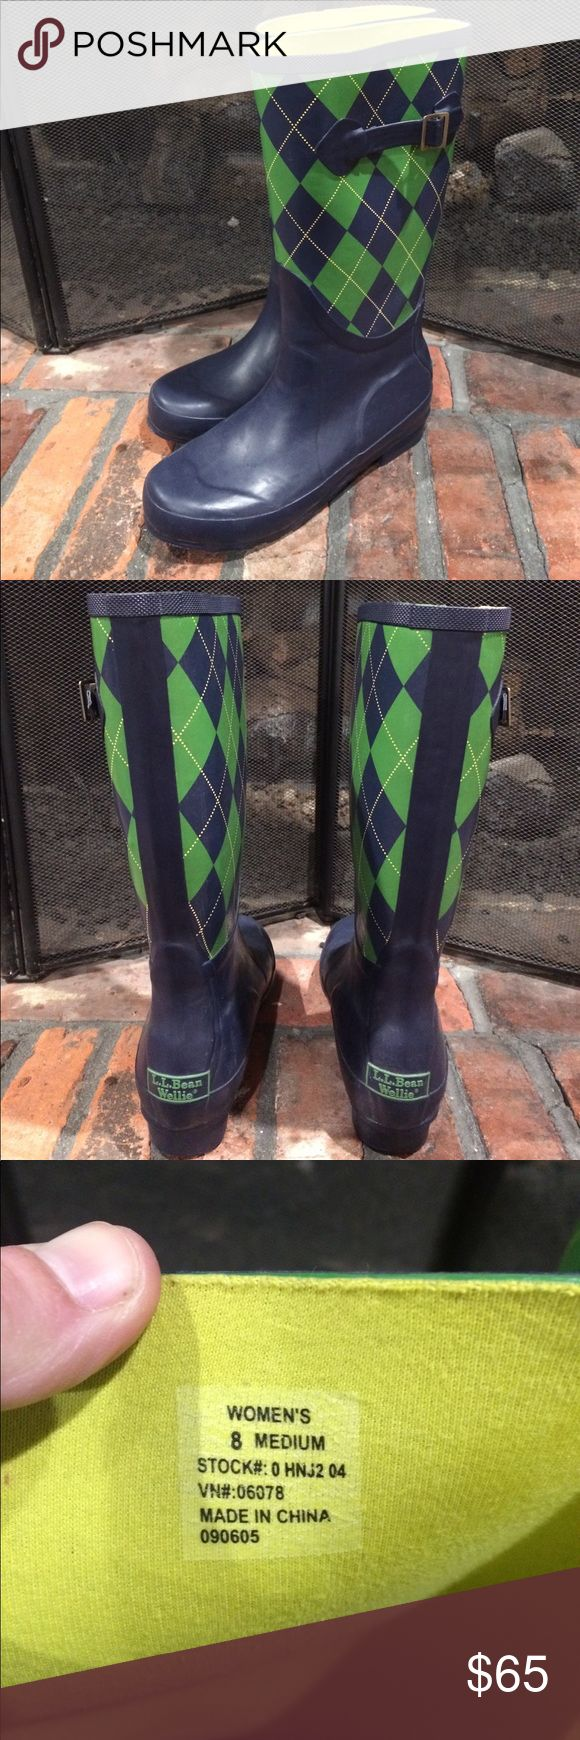 L.L. Bean women's Wellie rain boots size 8 L.L. Bean women's Wellie rain boots size 8.  Gorgeous navy blue, green and yellow argyle print boot.  Excellent condition L.L. Bean Shoes Winter & Rain Boots